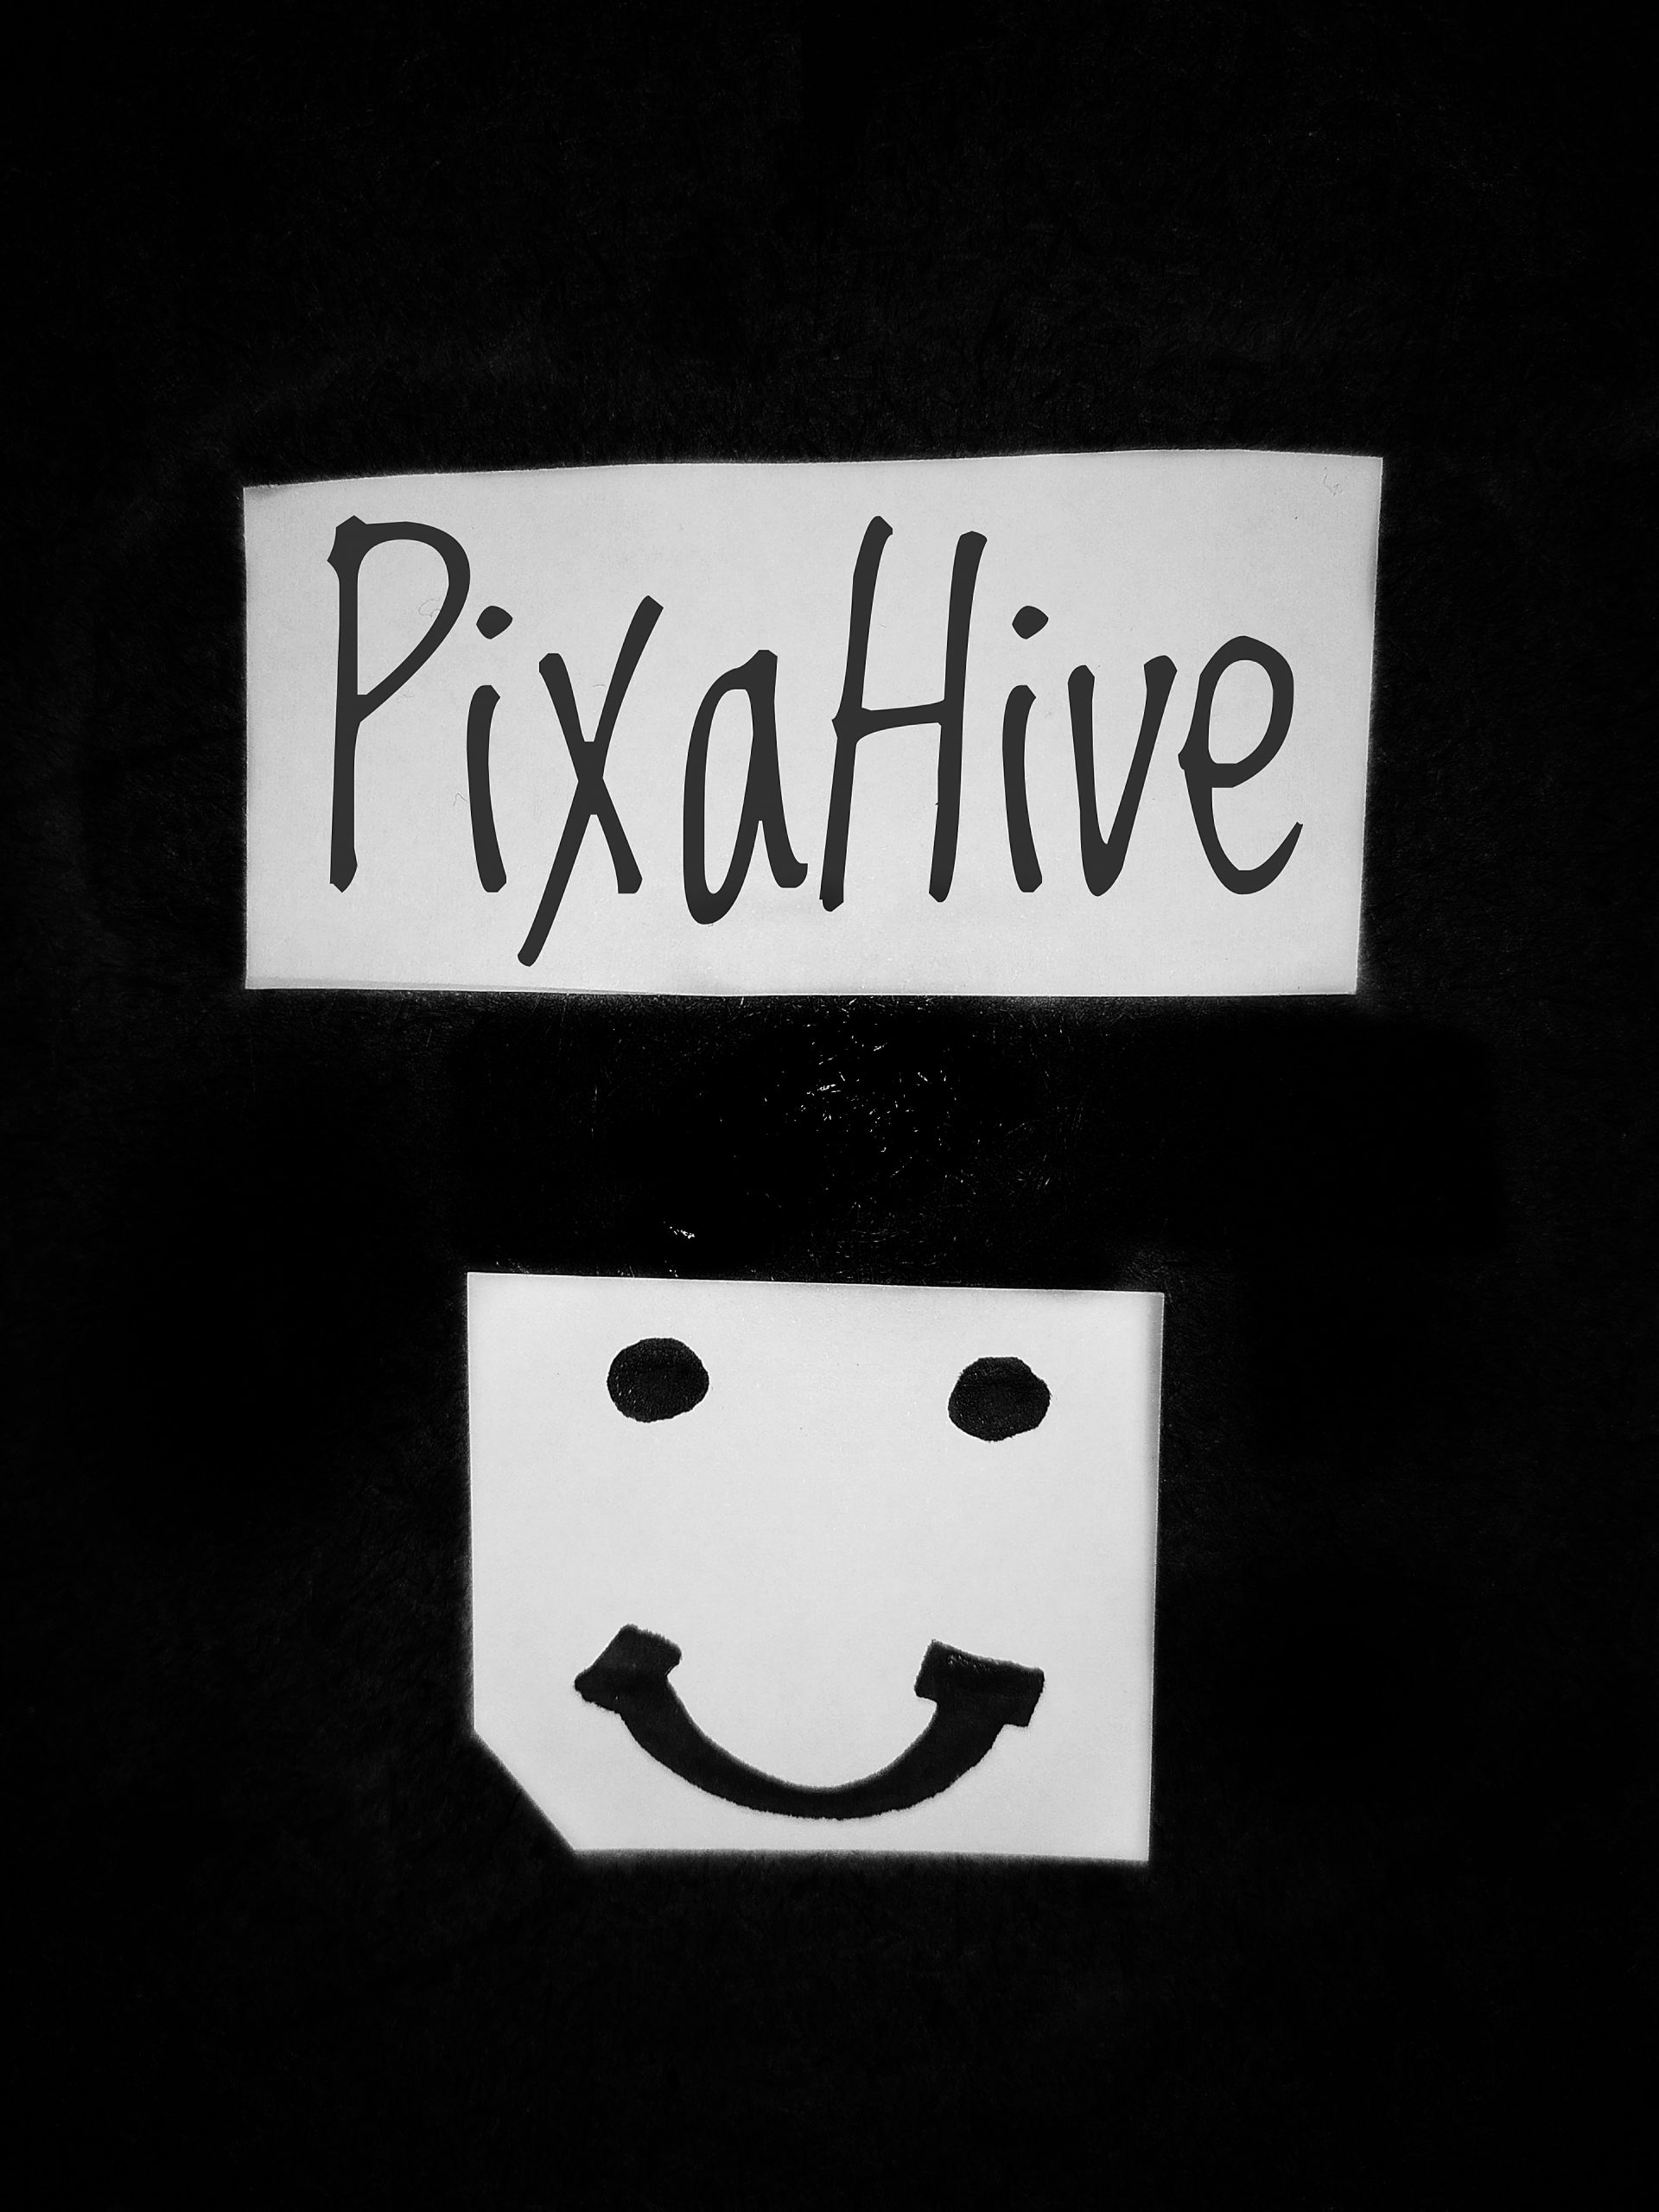 Good review for Pixahive